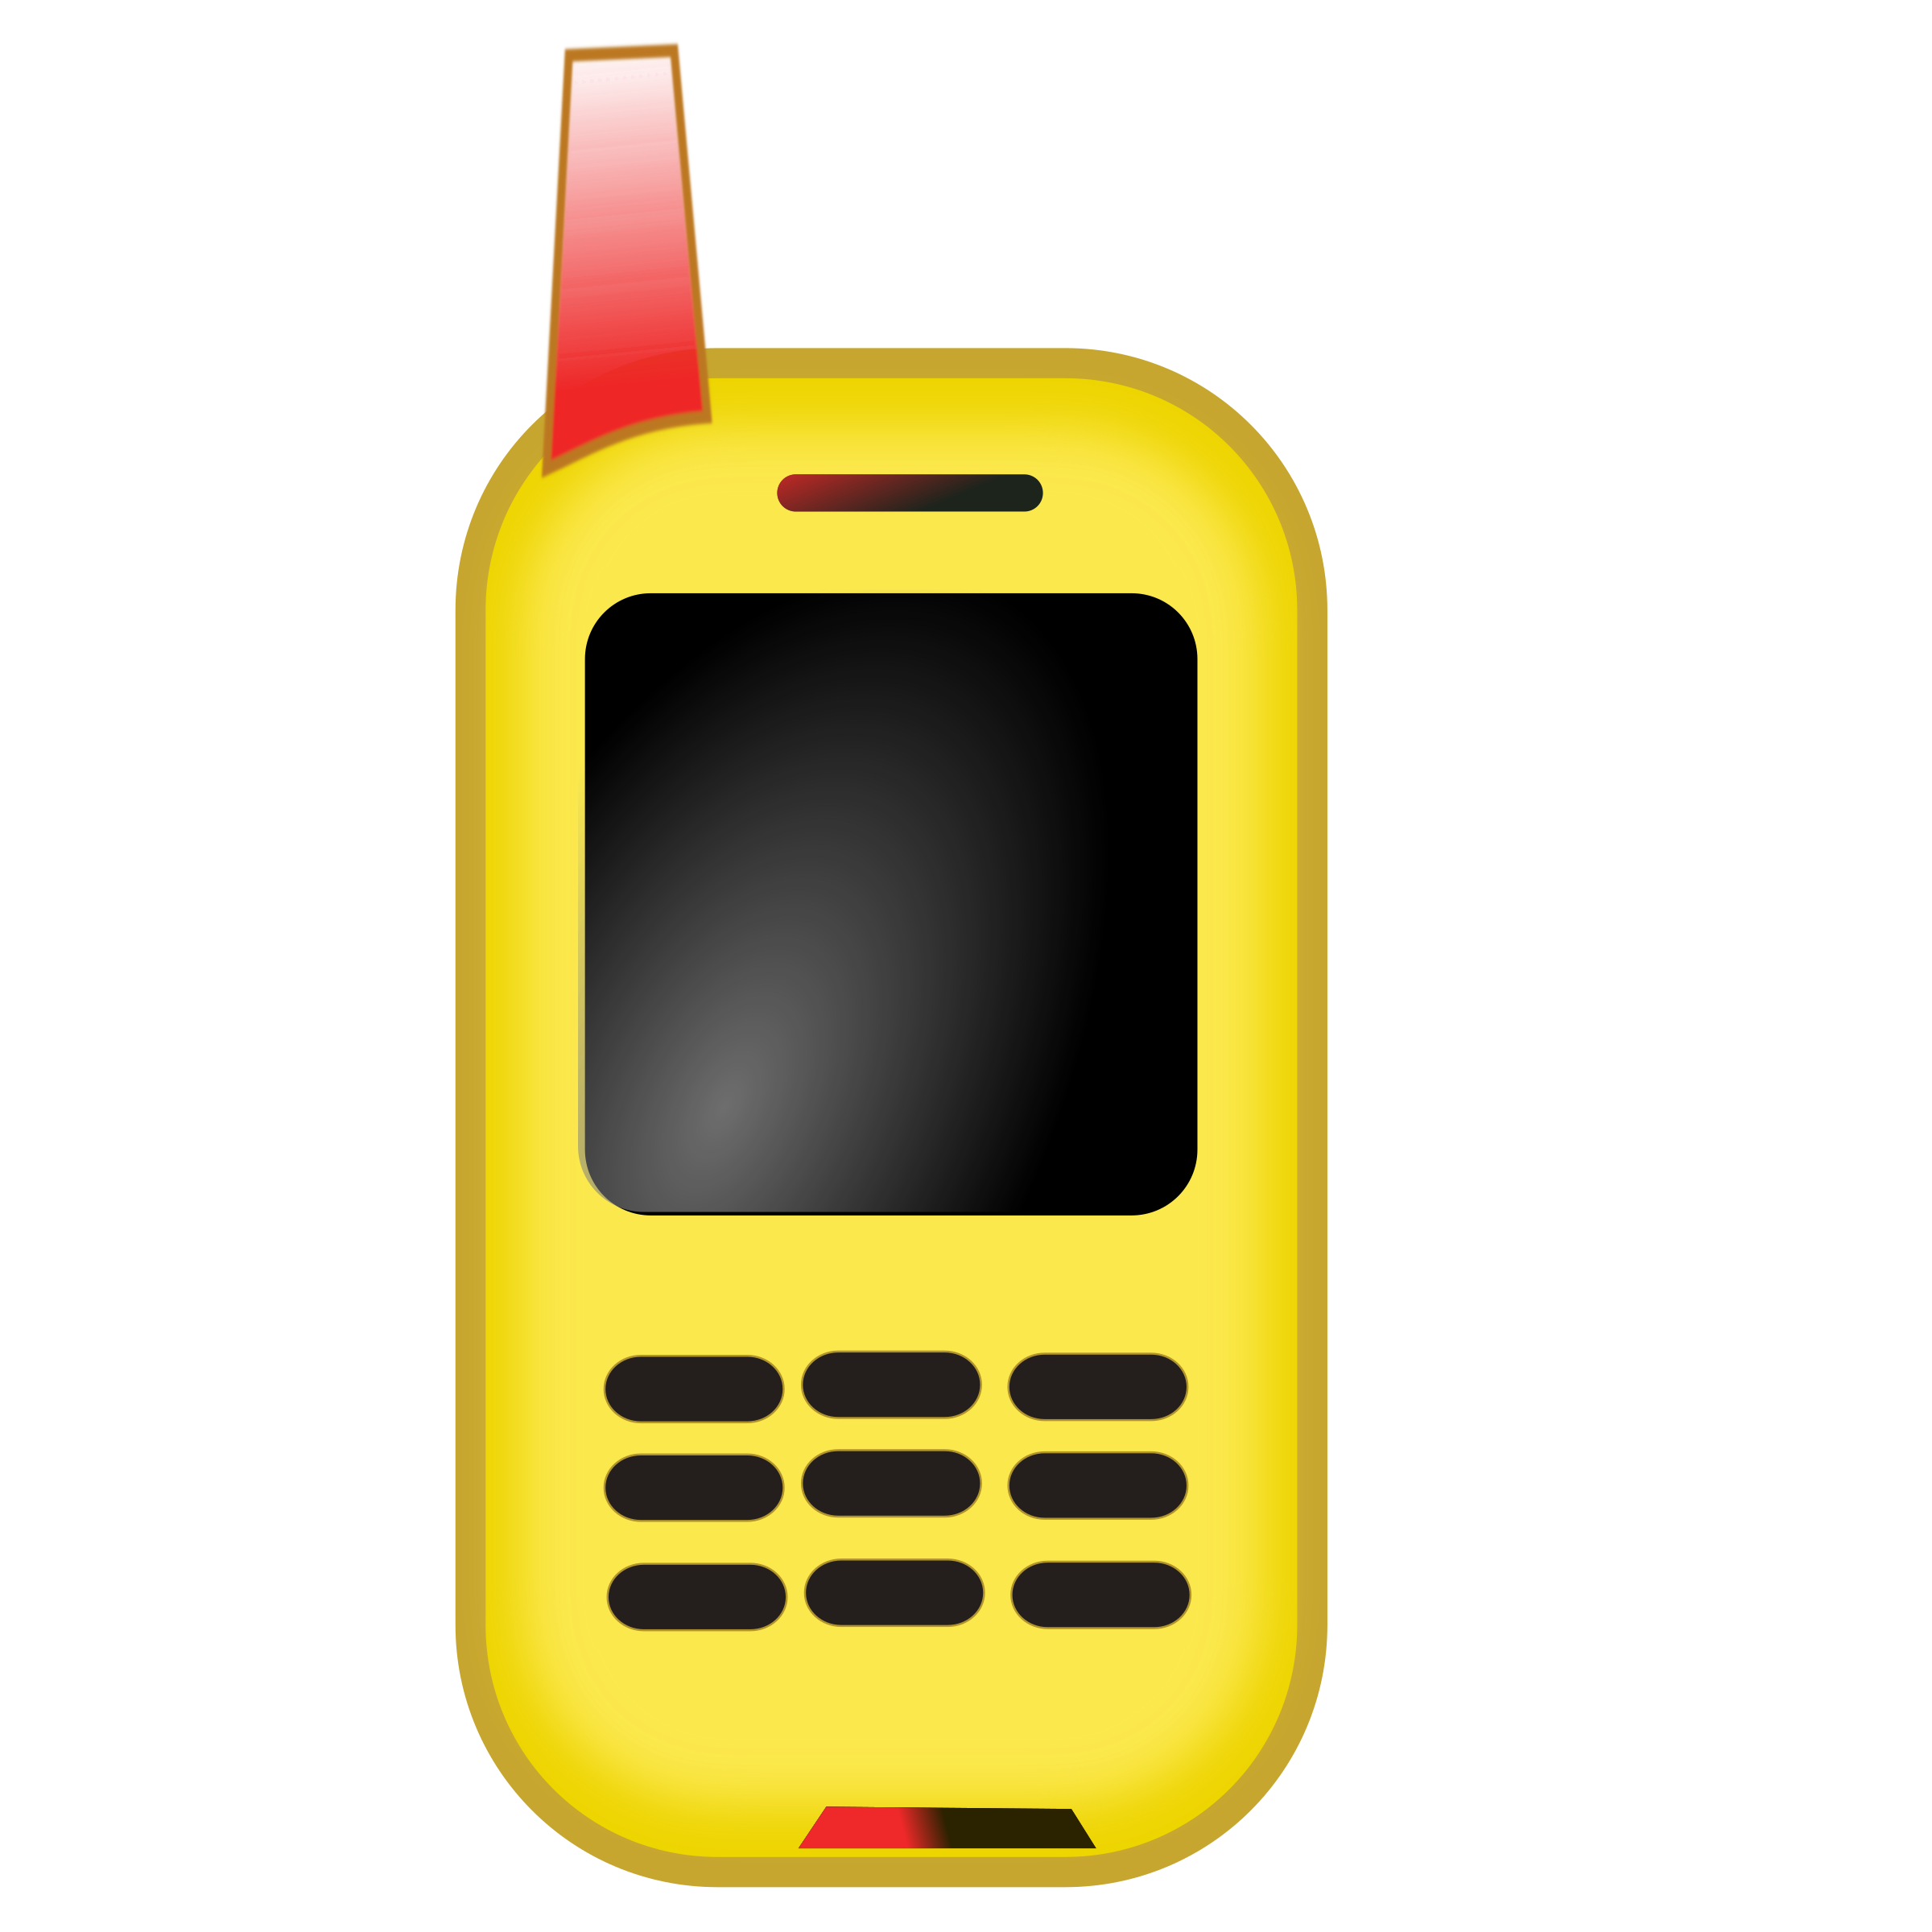 free download Netalloy toy phone big. Gps clipart mobile